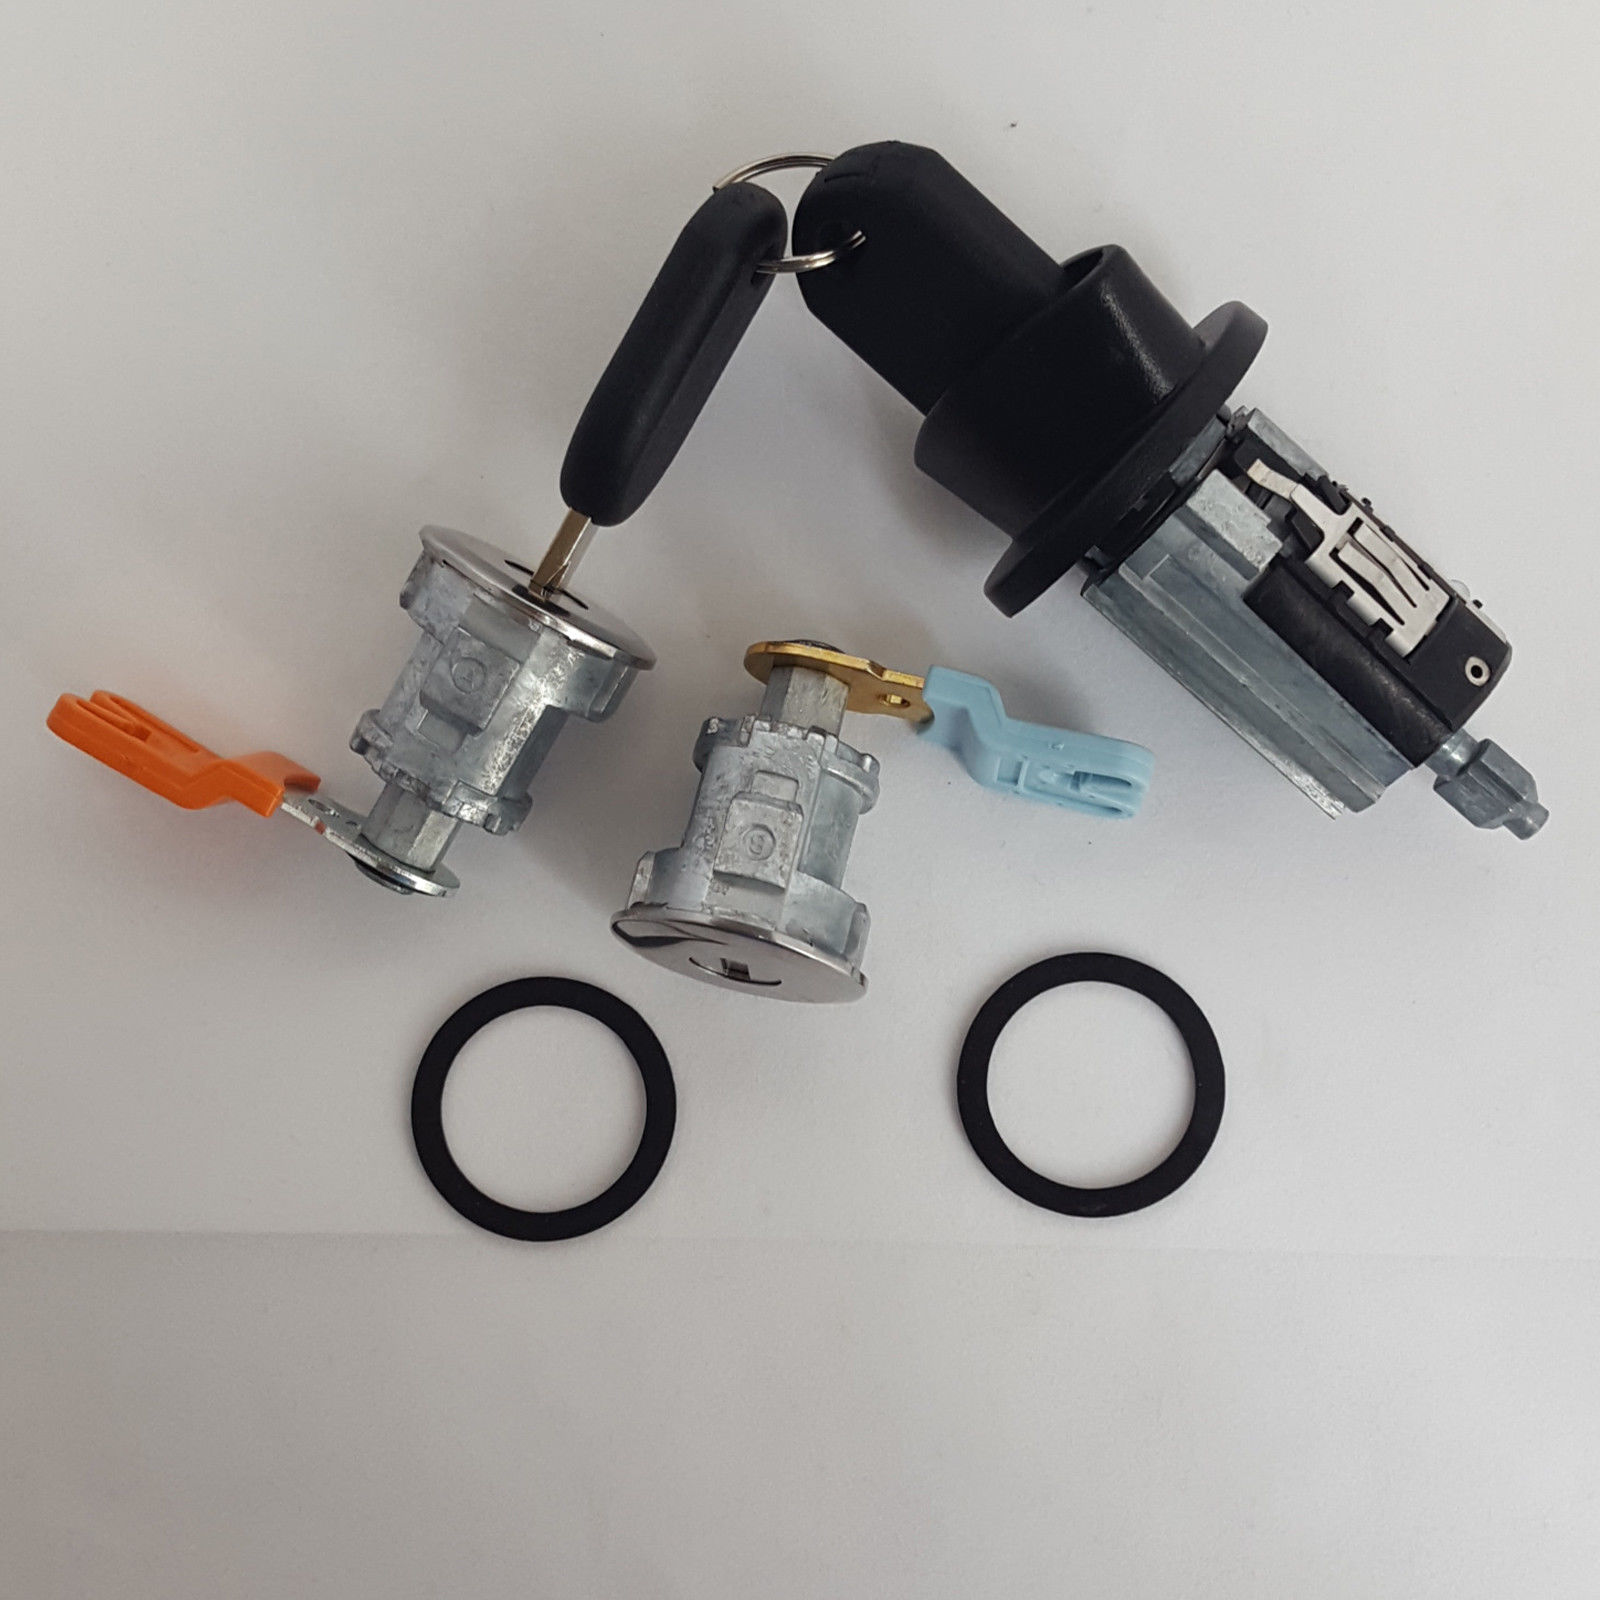 Ford Ignition Switch Cylinder Lock, Pair of 2 Door Lock Cylinders 2 x H84 Keys